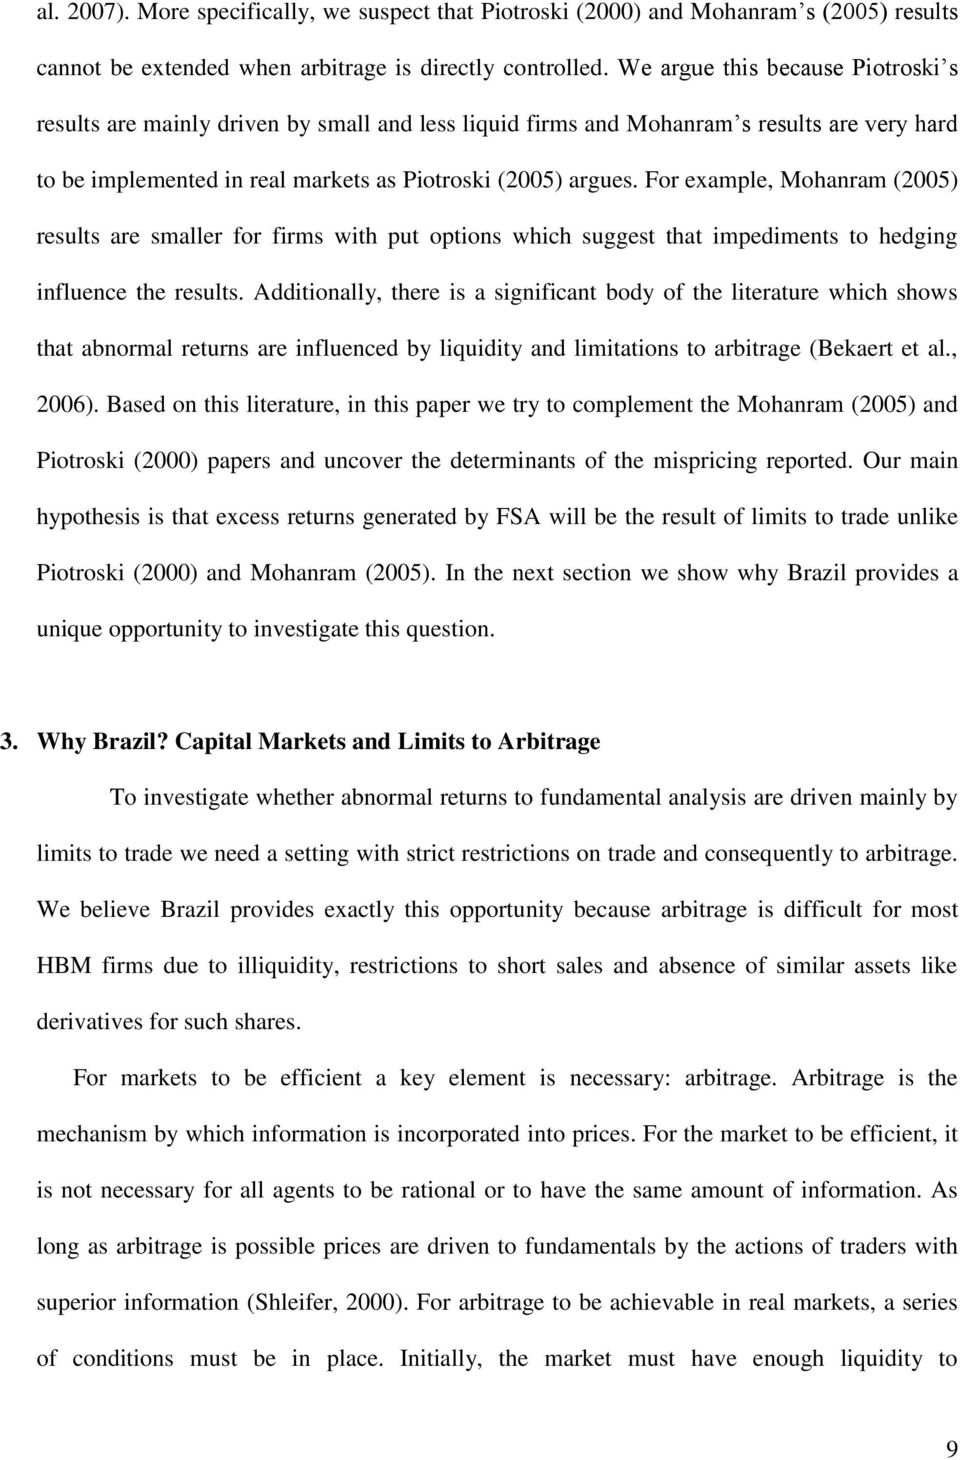 For example, Mohanram (2005) results are smaller for firms with put options which suggest that impediments to hedging influence the results.